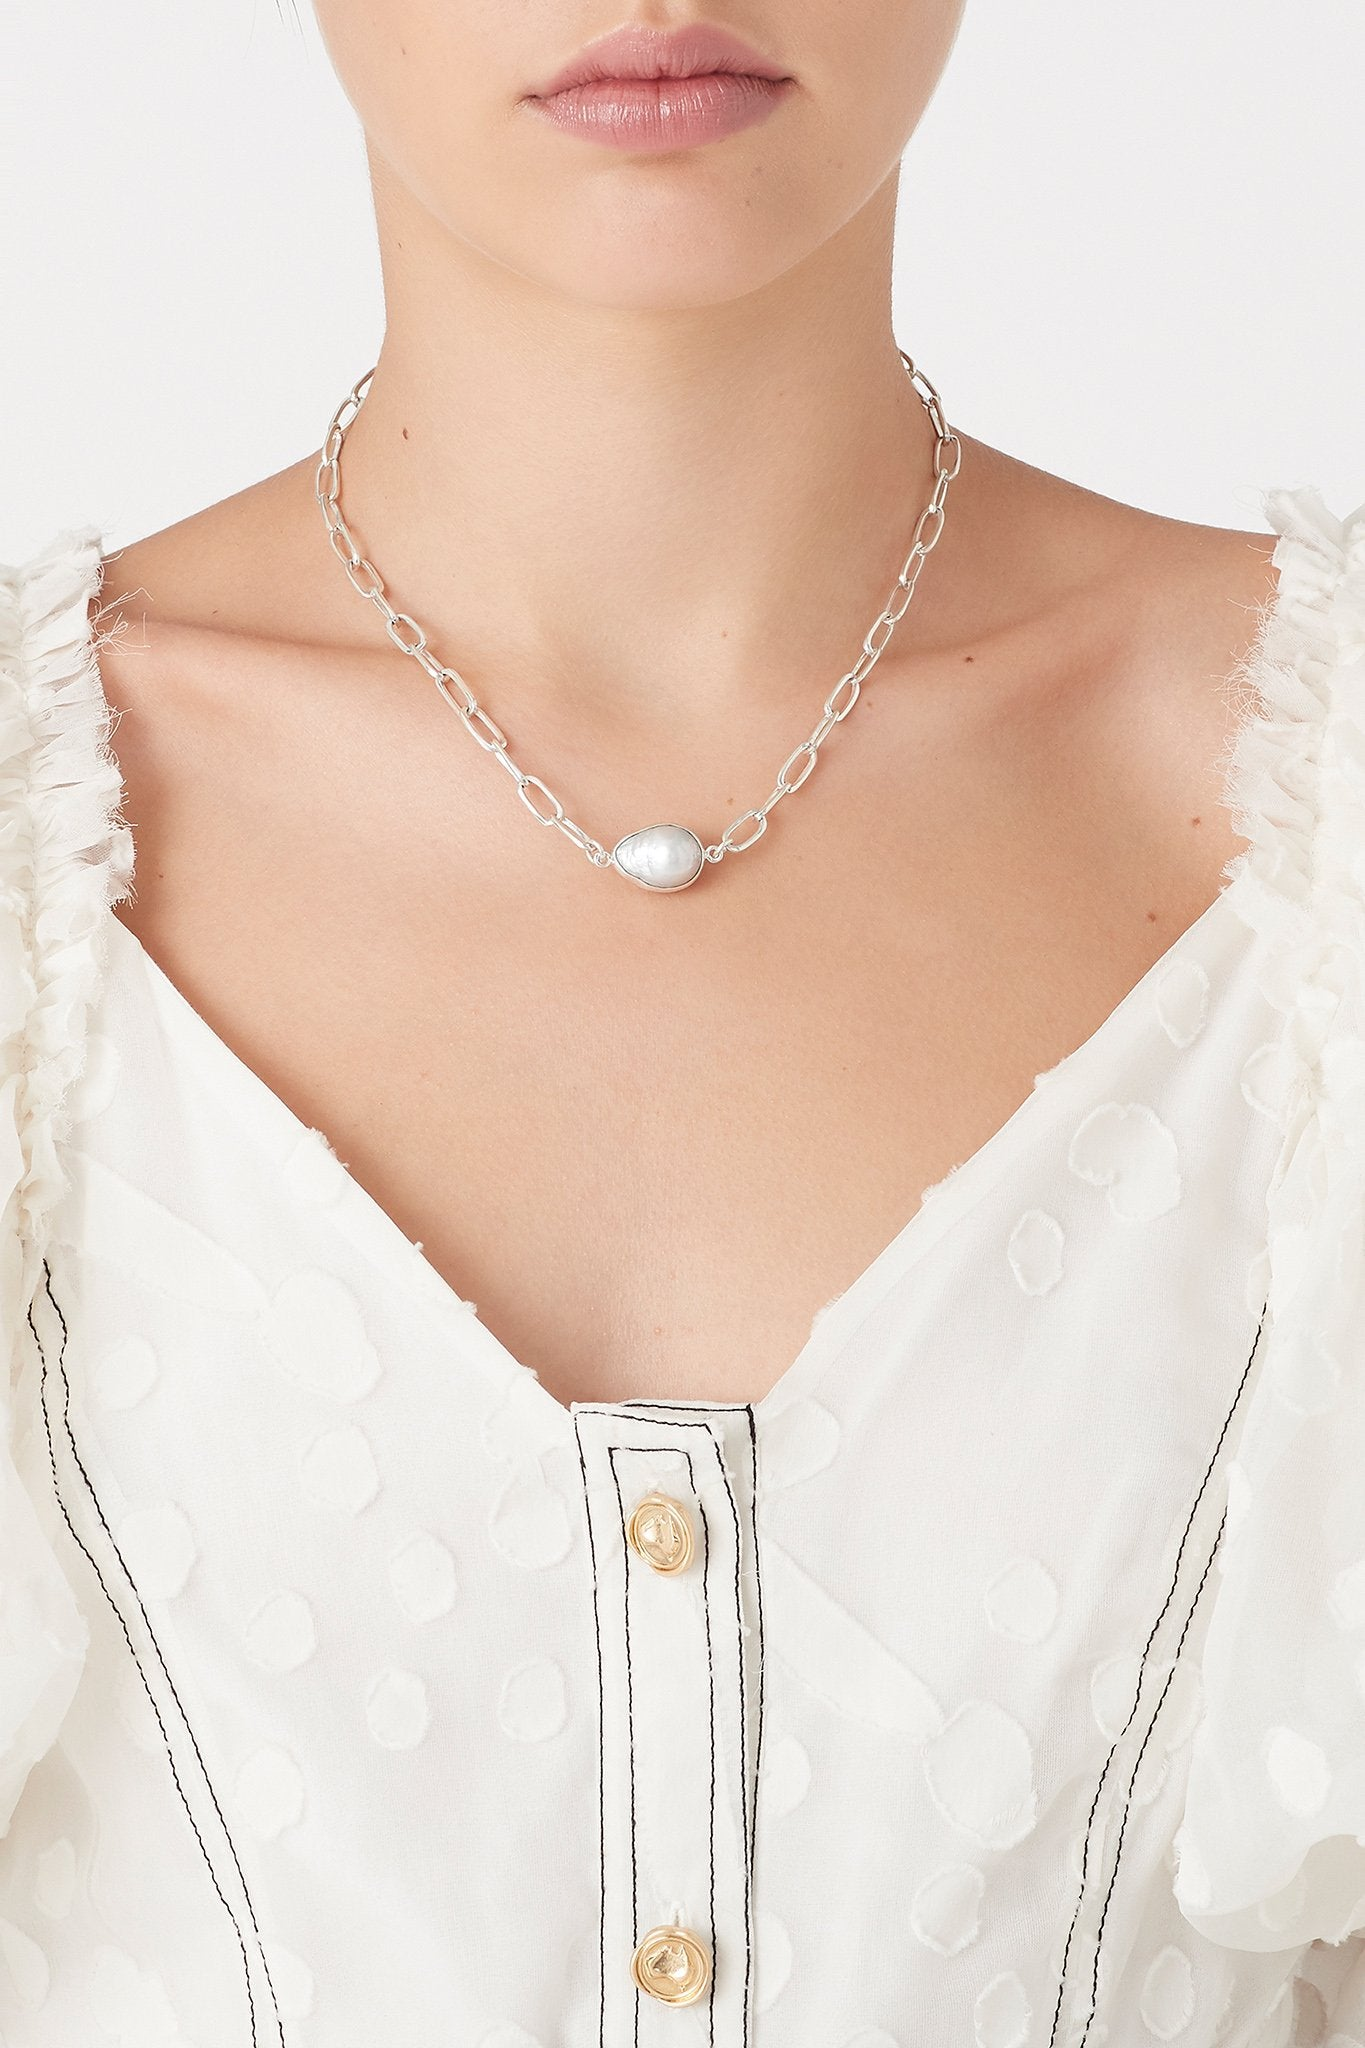 The Pearl and Fob Necklace Product View